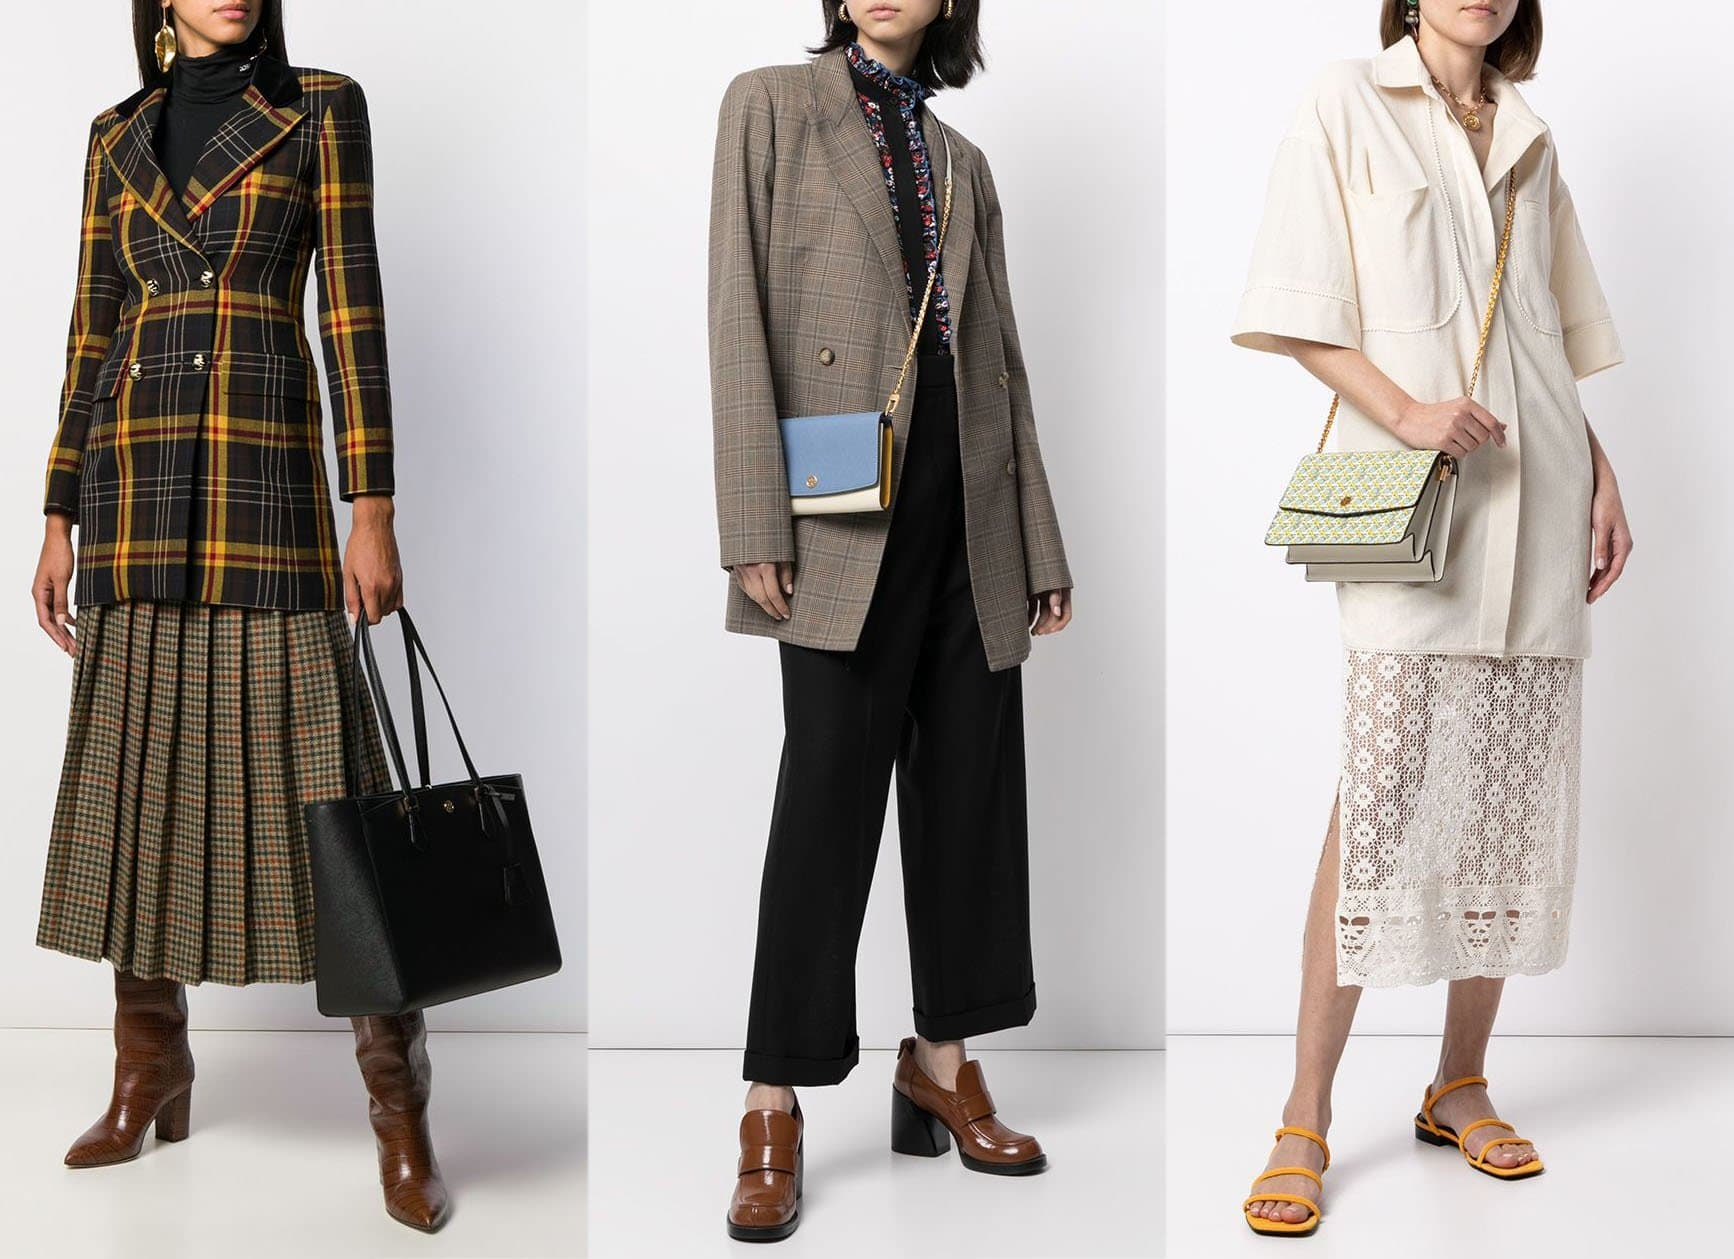 You can find the Robinson bag in different silhouettes, including tote and convertible shoulder bag silhouettes